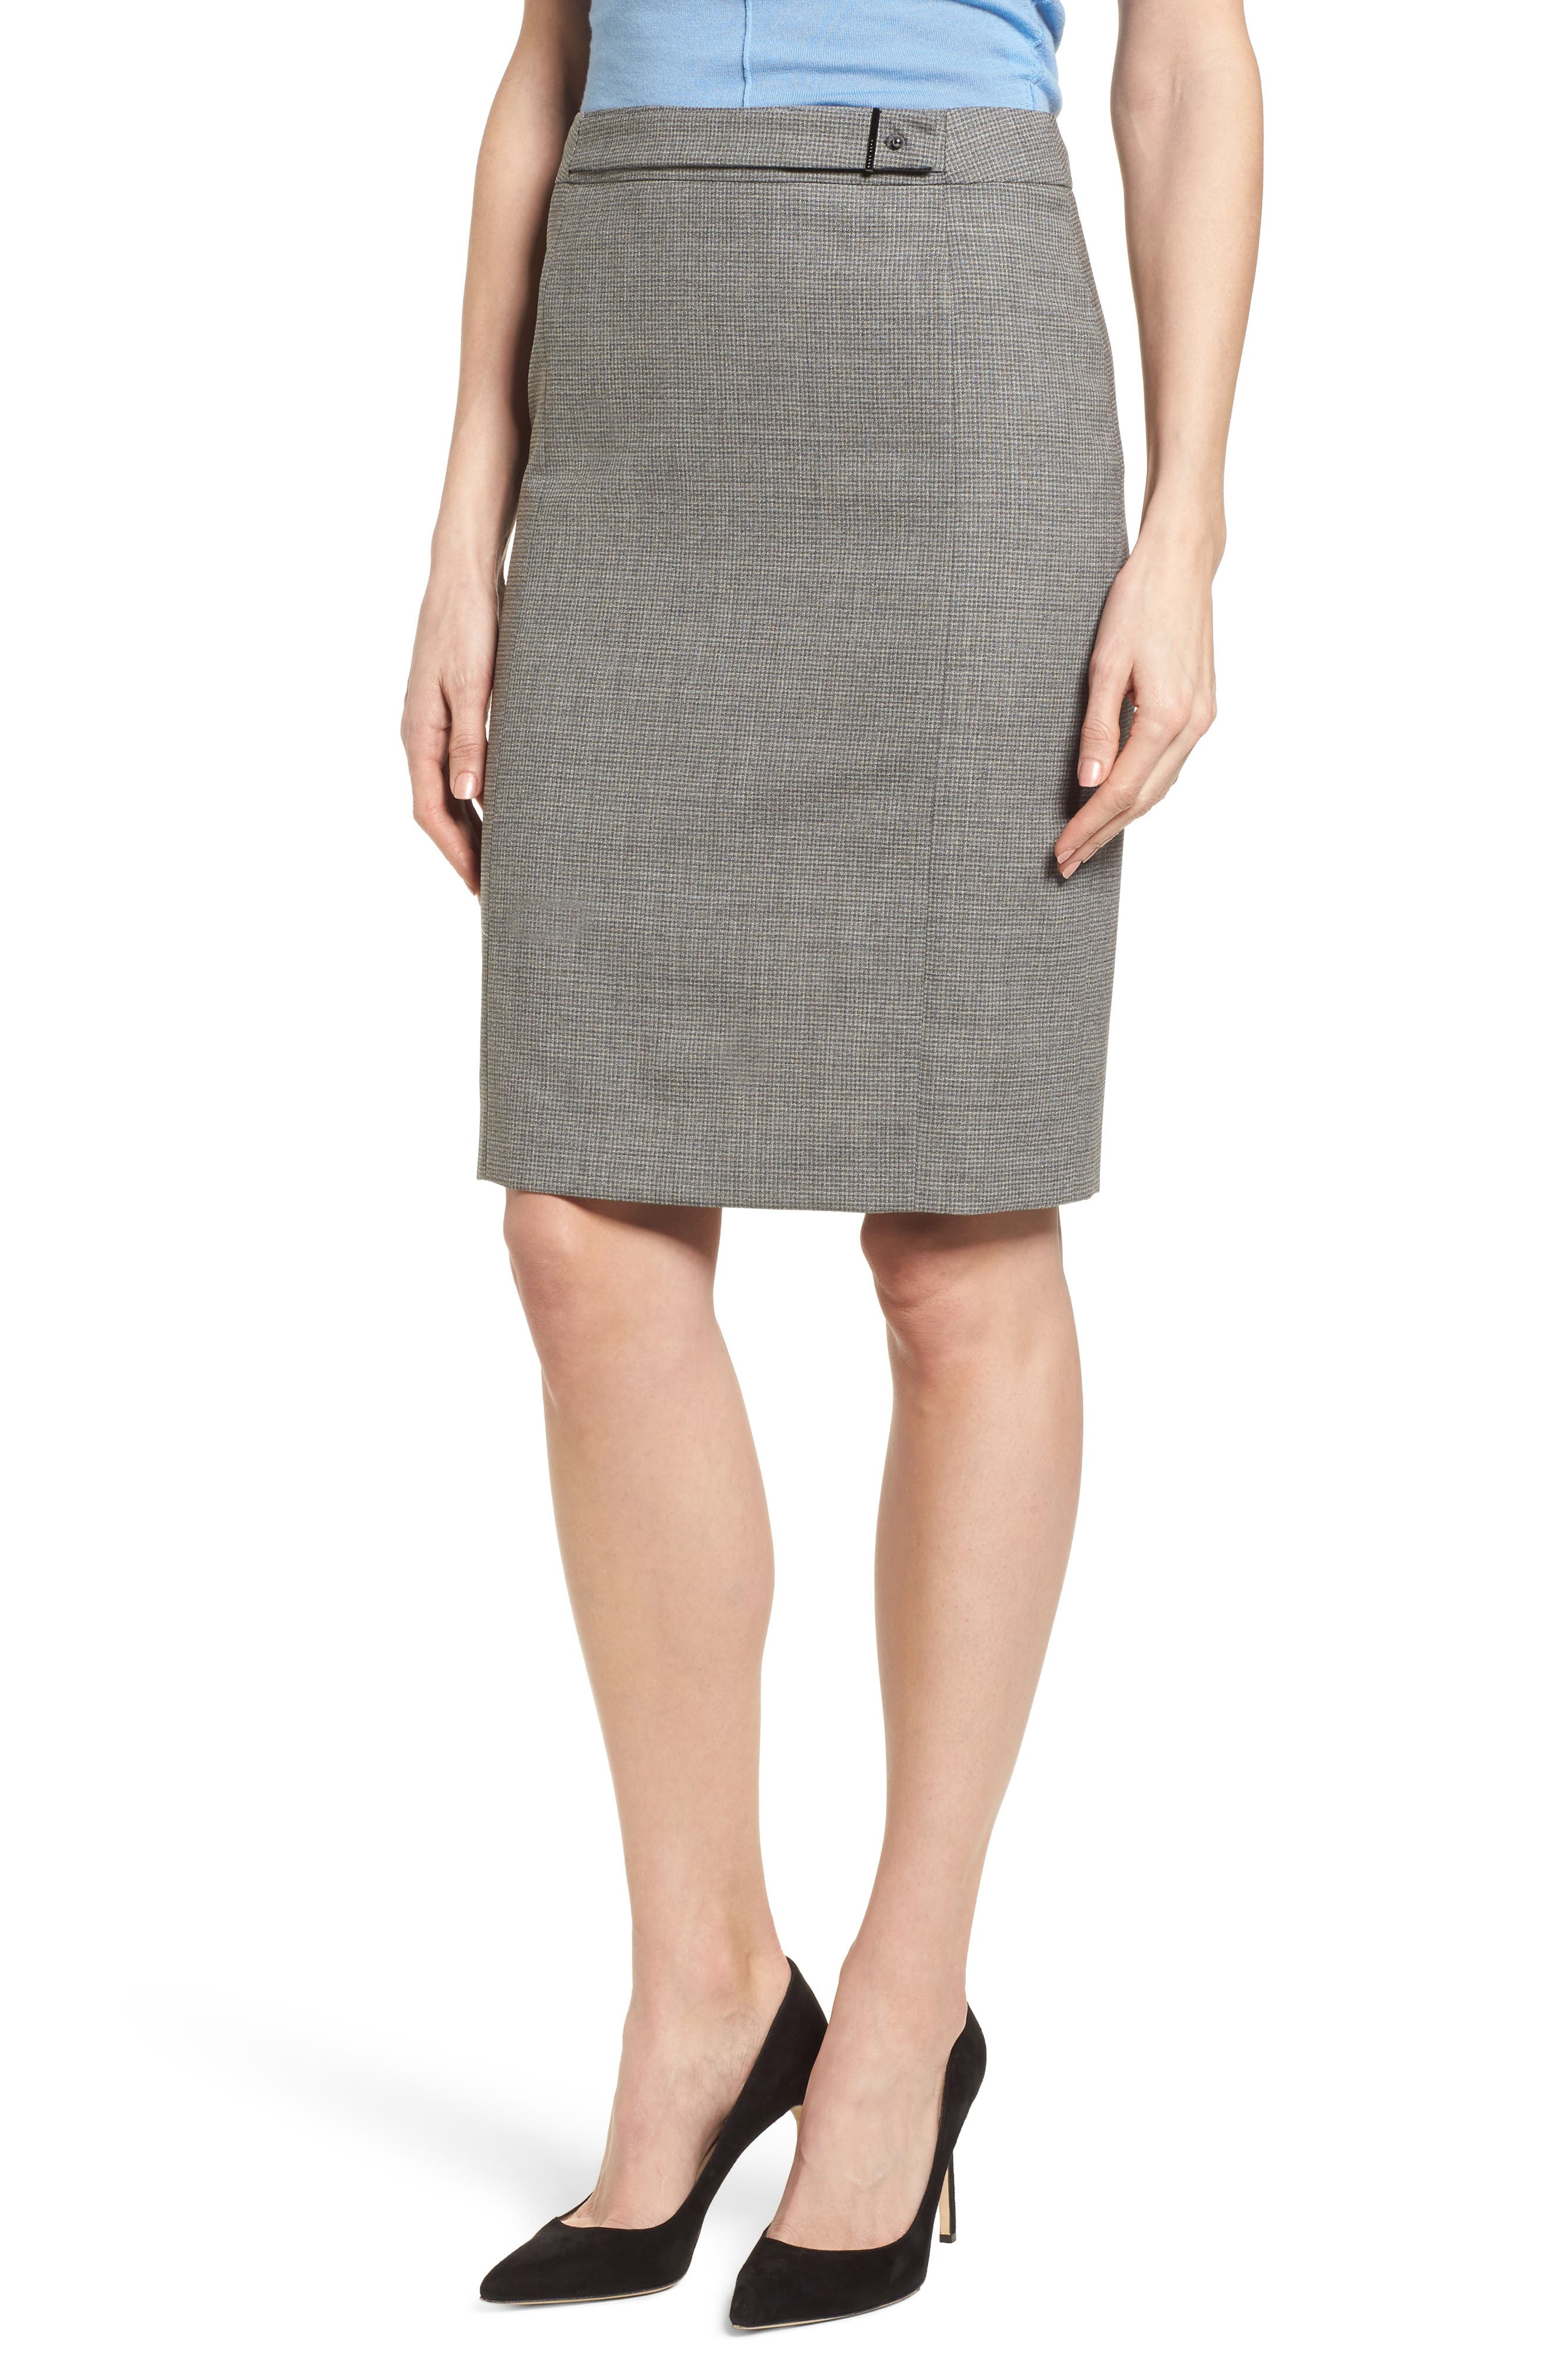 Vewisa Check Wool Suit Skirt,                             Main thumbnail 1, color,                             066